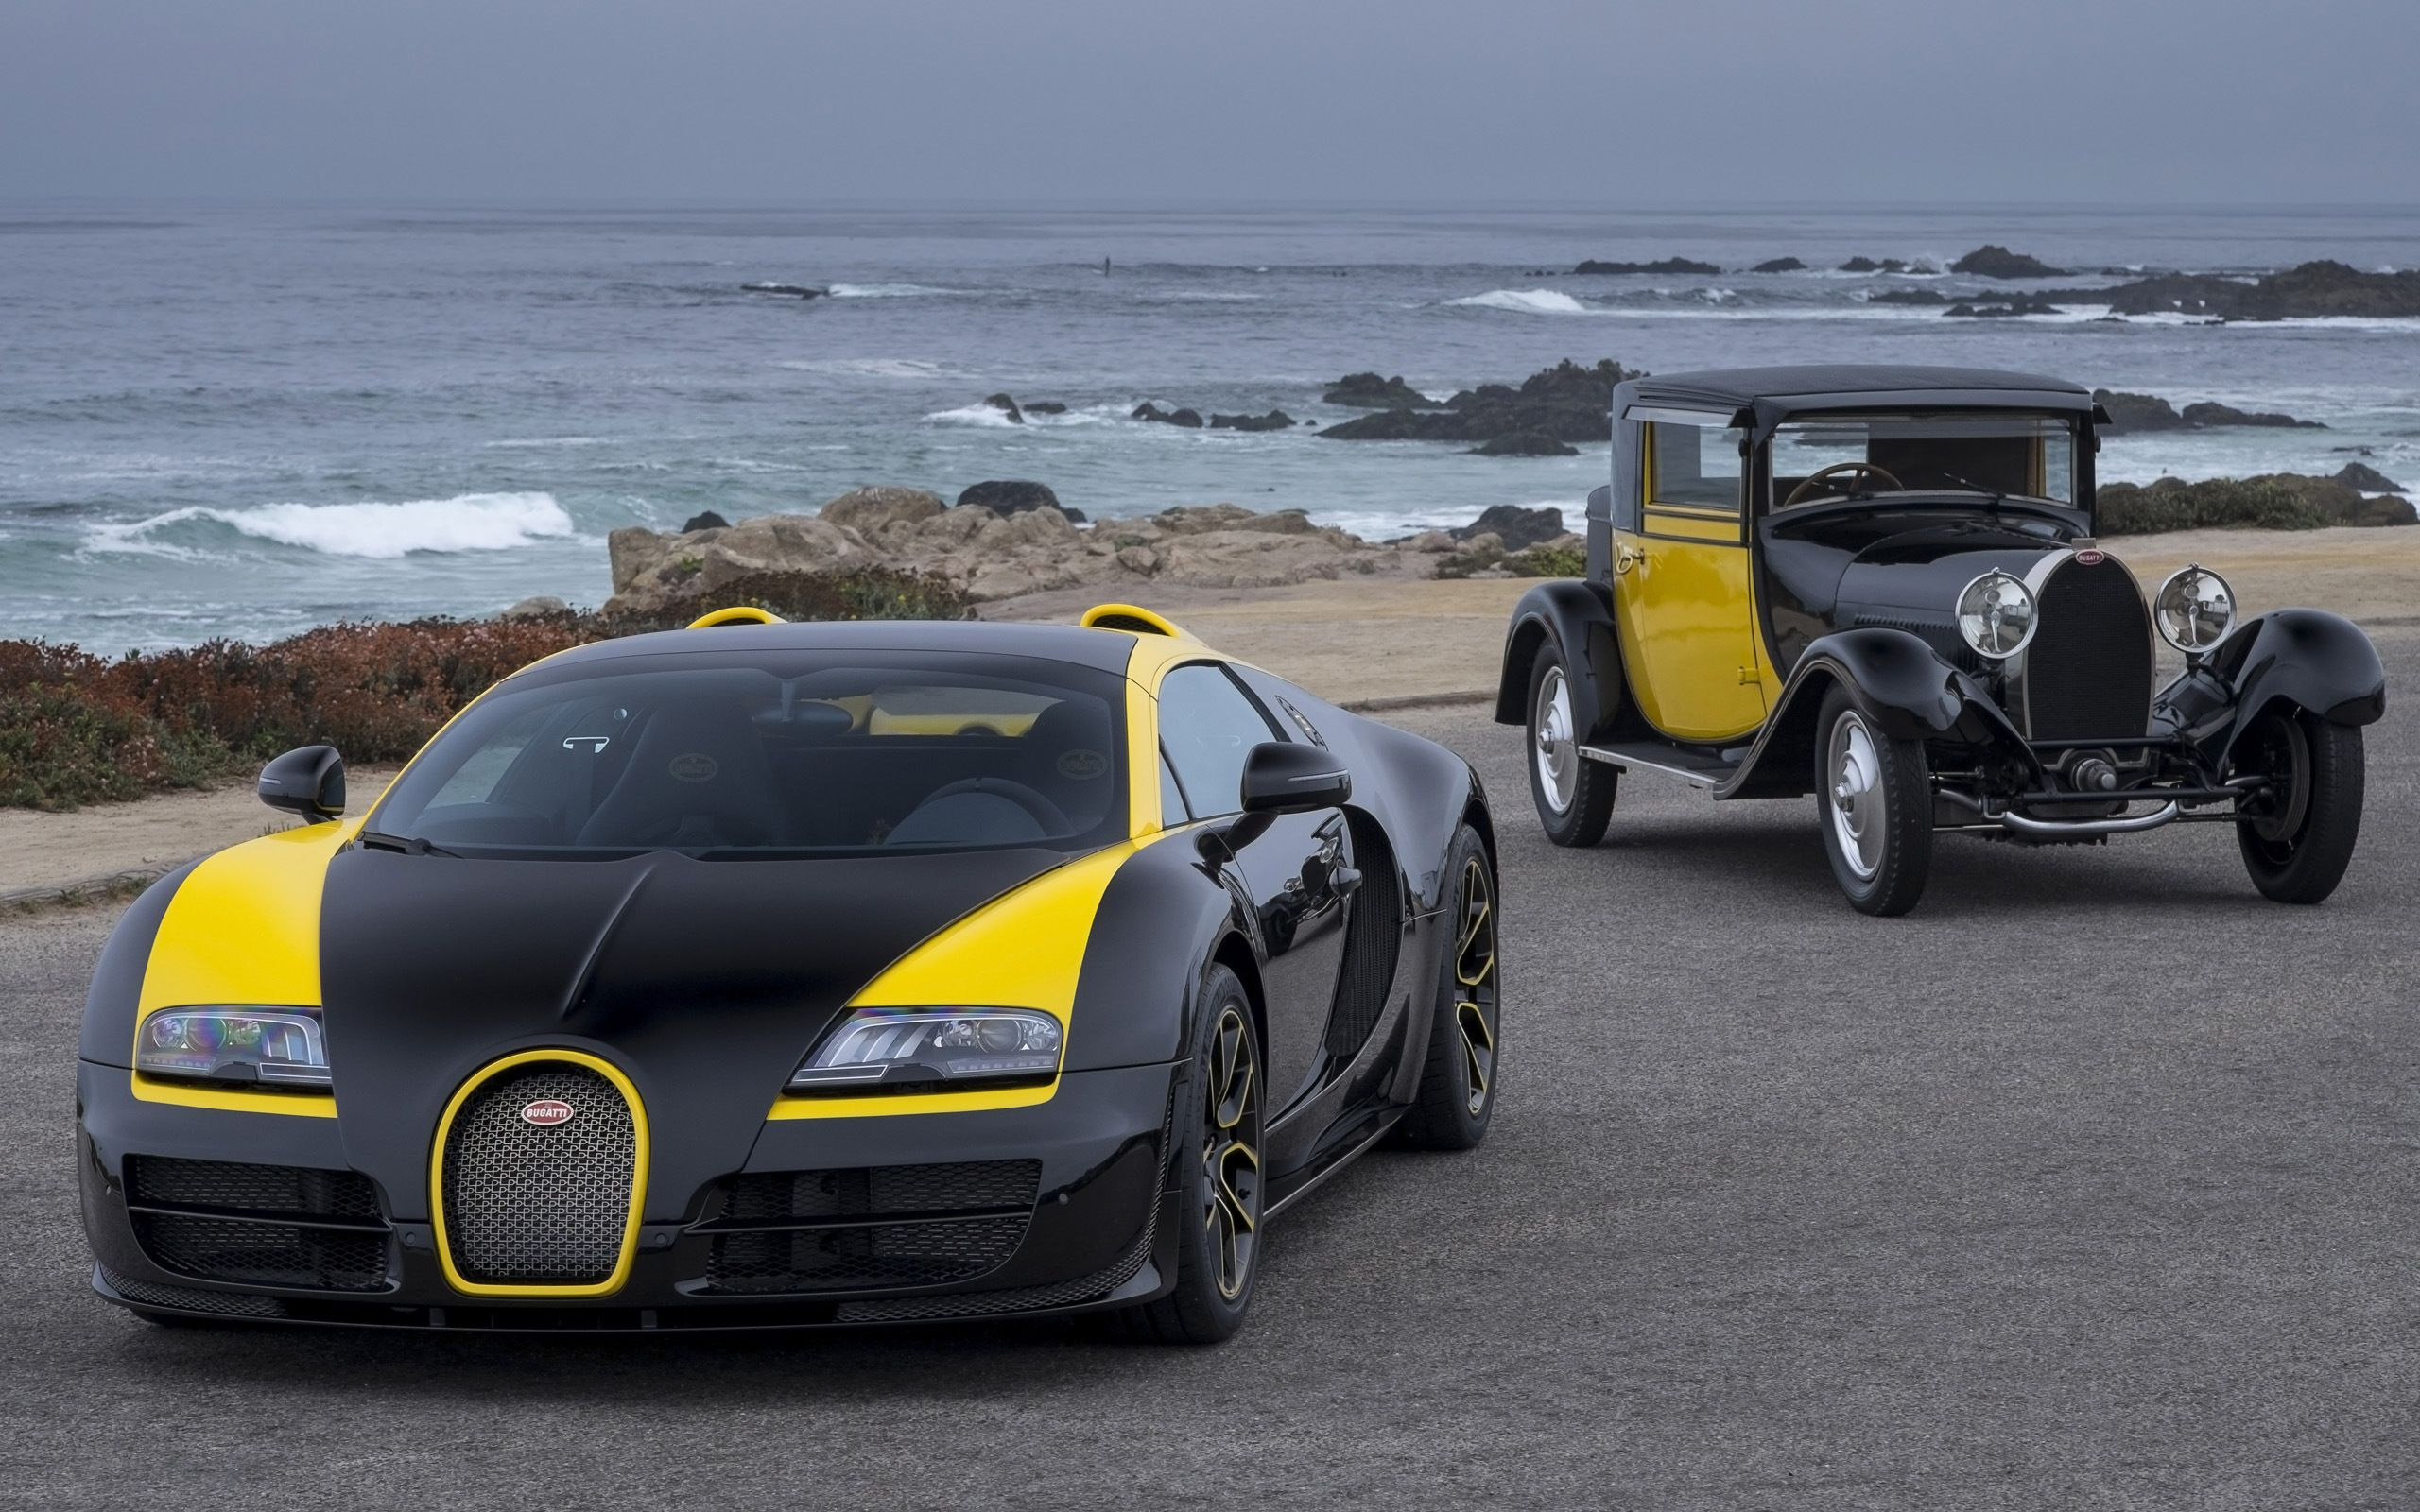 bugatti wallpapers - full hd wallpaper 2015 | auto cars | pinterest